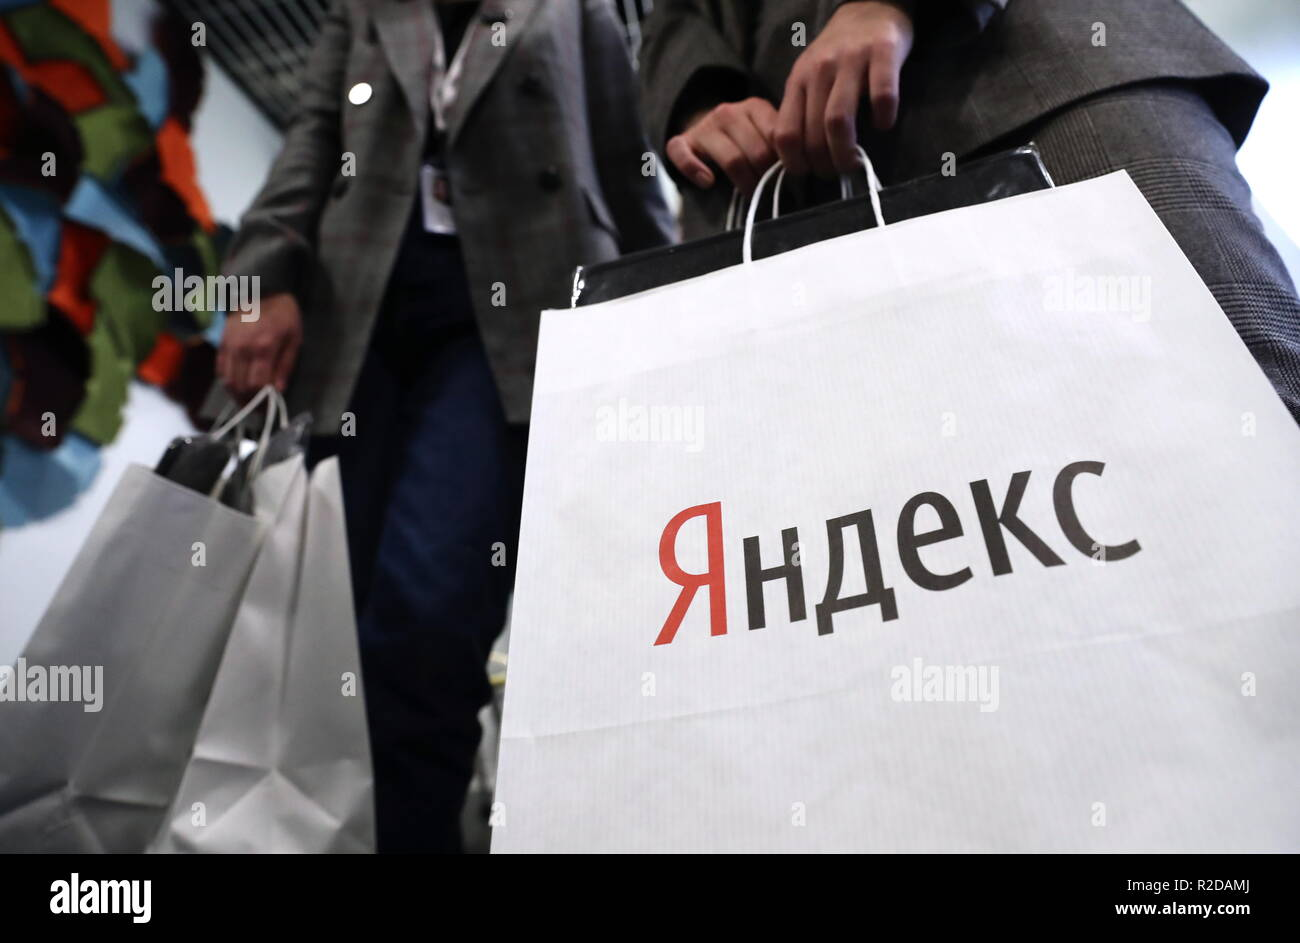 Moscow, Russia. 19th Nov, 2018. MOSCOW, RUSSIA - NOVEMBER 19, 2018: An event to unveil partner devices based on Yandex IO platform. Yandex IO is a development kit that allows integrating Artificial Intelligence (AI) with voice capabilities into consumer electronics, cars and vending machines. Anton Novoderezhkin/TASS Credit: ITAR-TASS News Agency/Alamy Live News - Stock Image